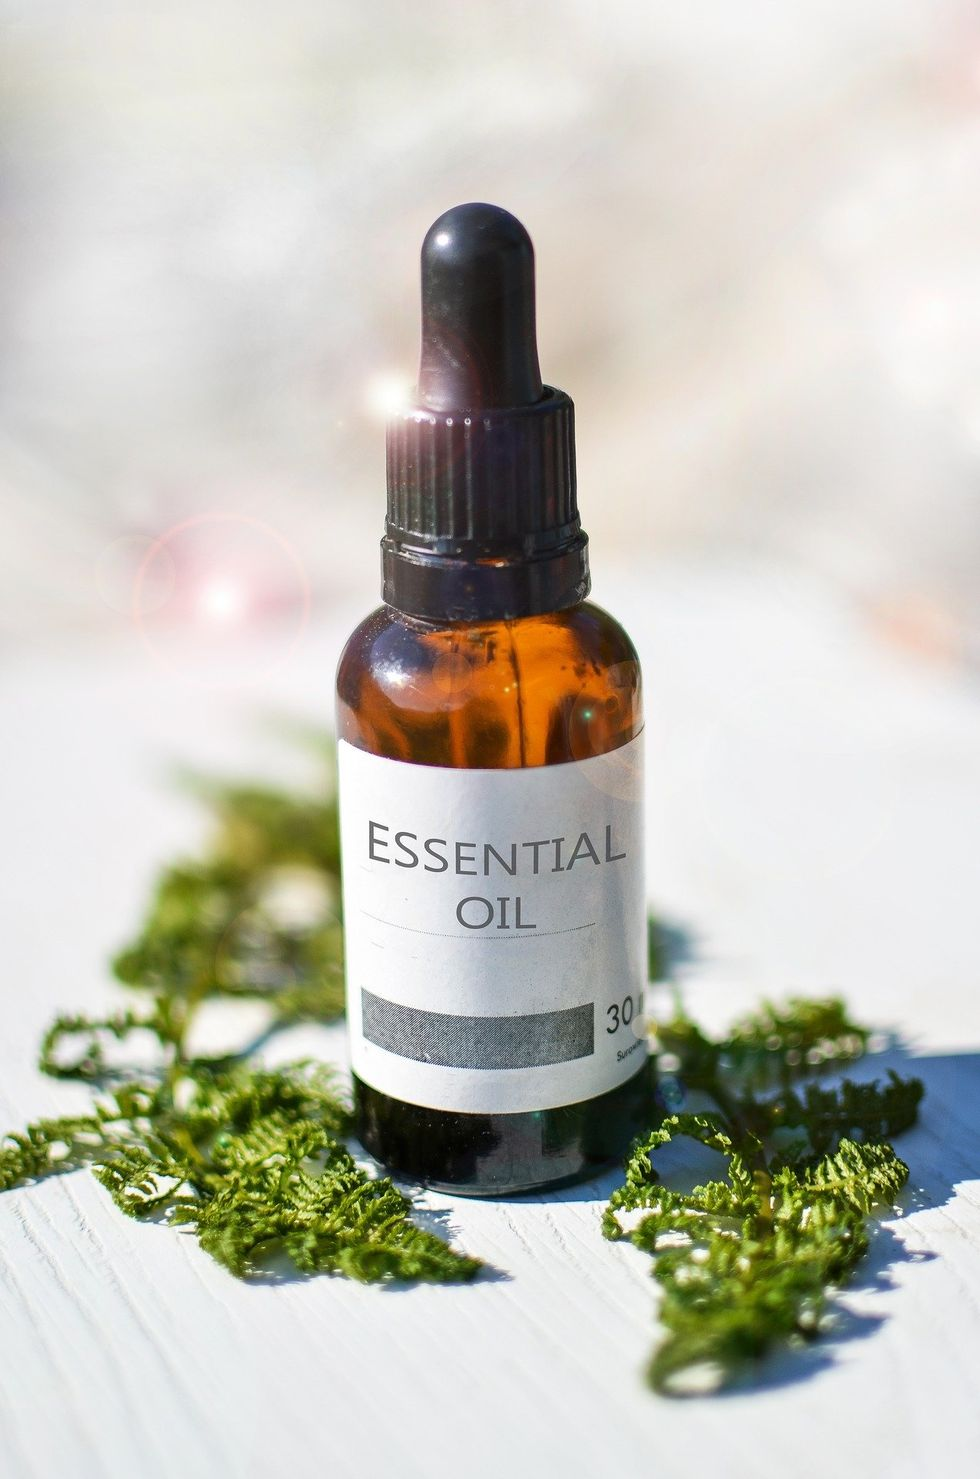 Essential Oils Are Helpful For Almost Anything